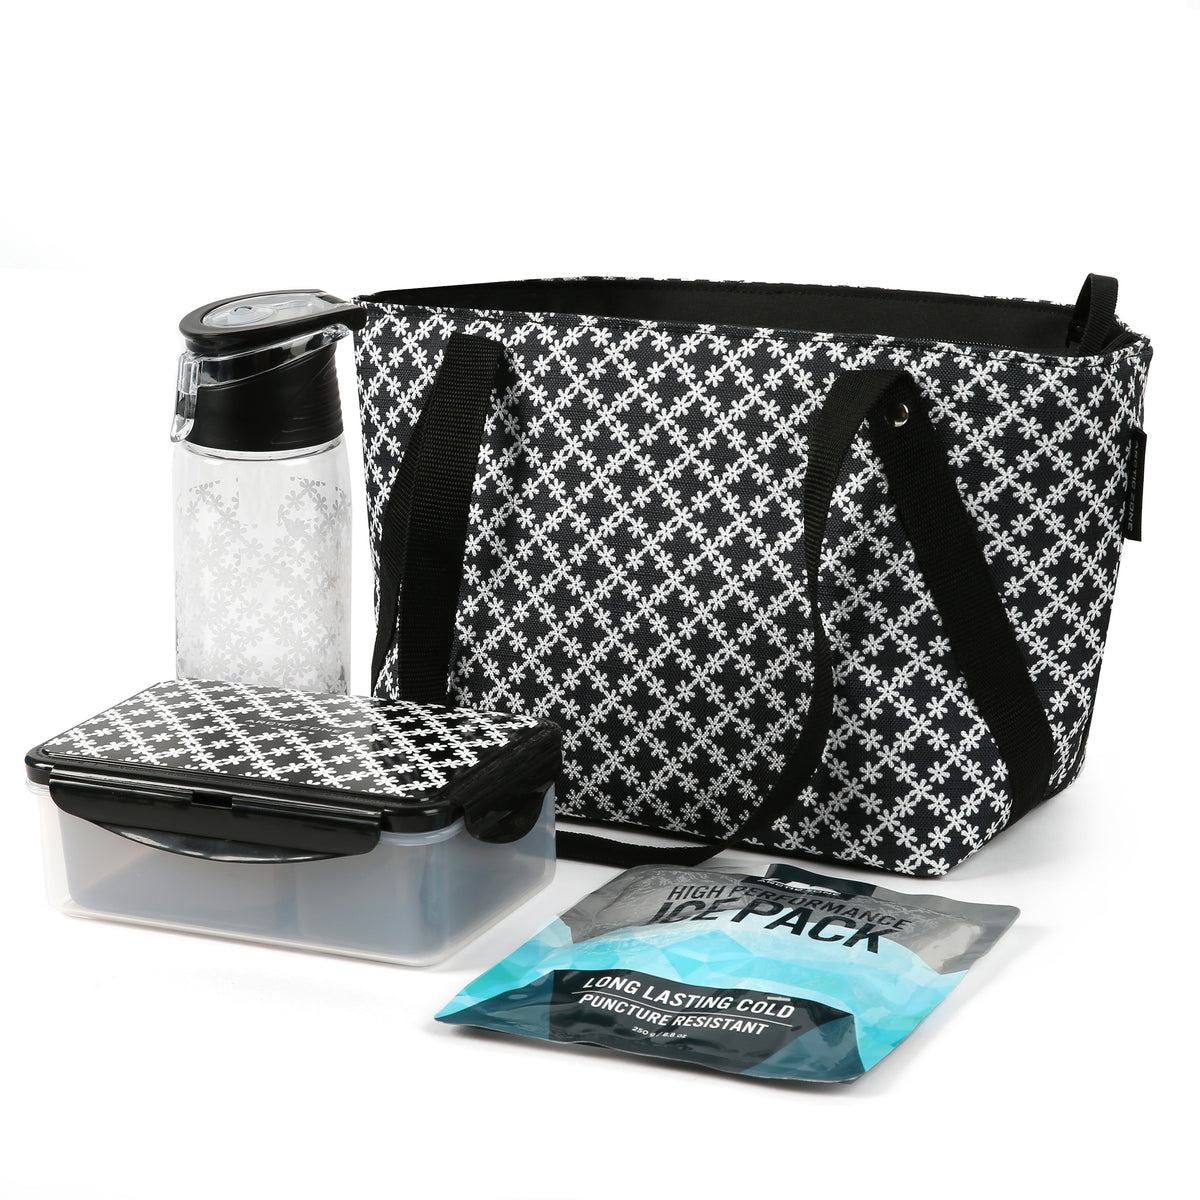 Arctic Zone® Commuter Tote - Delicate Daisies - Bag with ice pack water bottle and containers